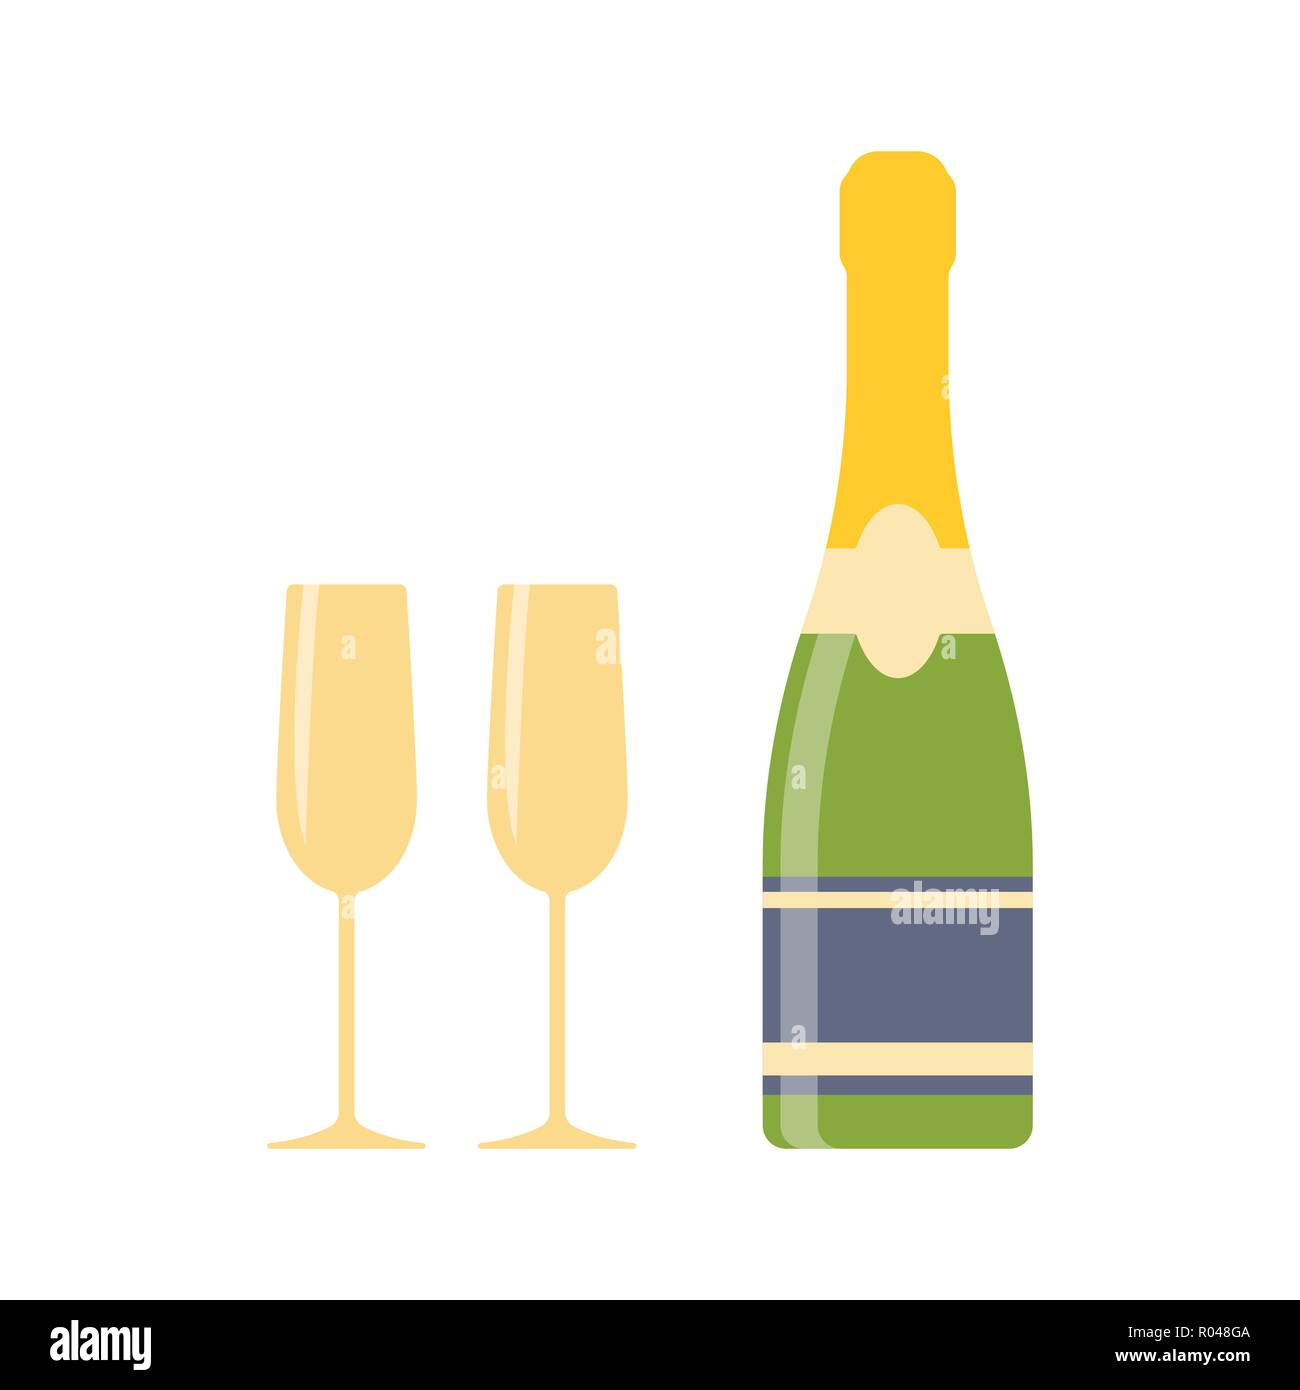 Champagne and two wine glasses isolated on white background. Alcoholic drink icon. Simple flat vector illustration, EPS 10. Stock Vector